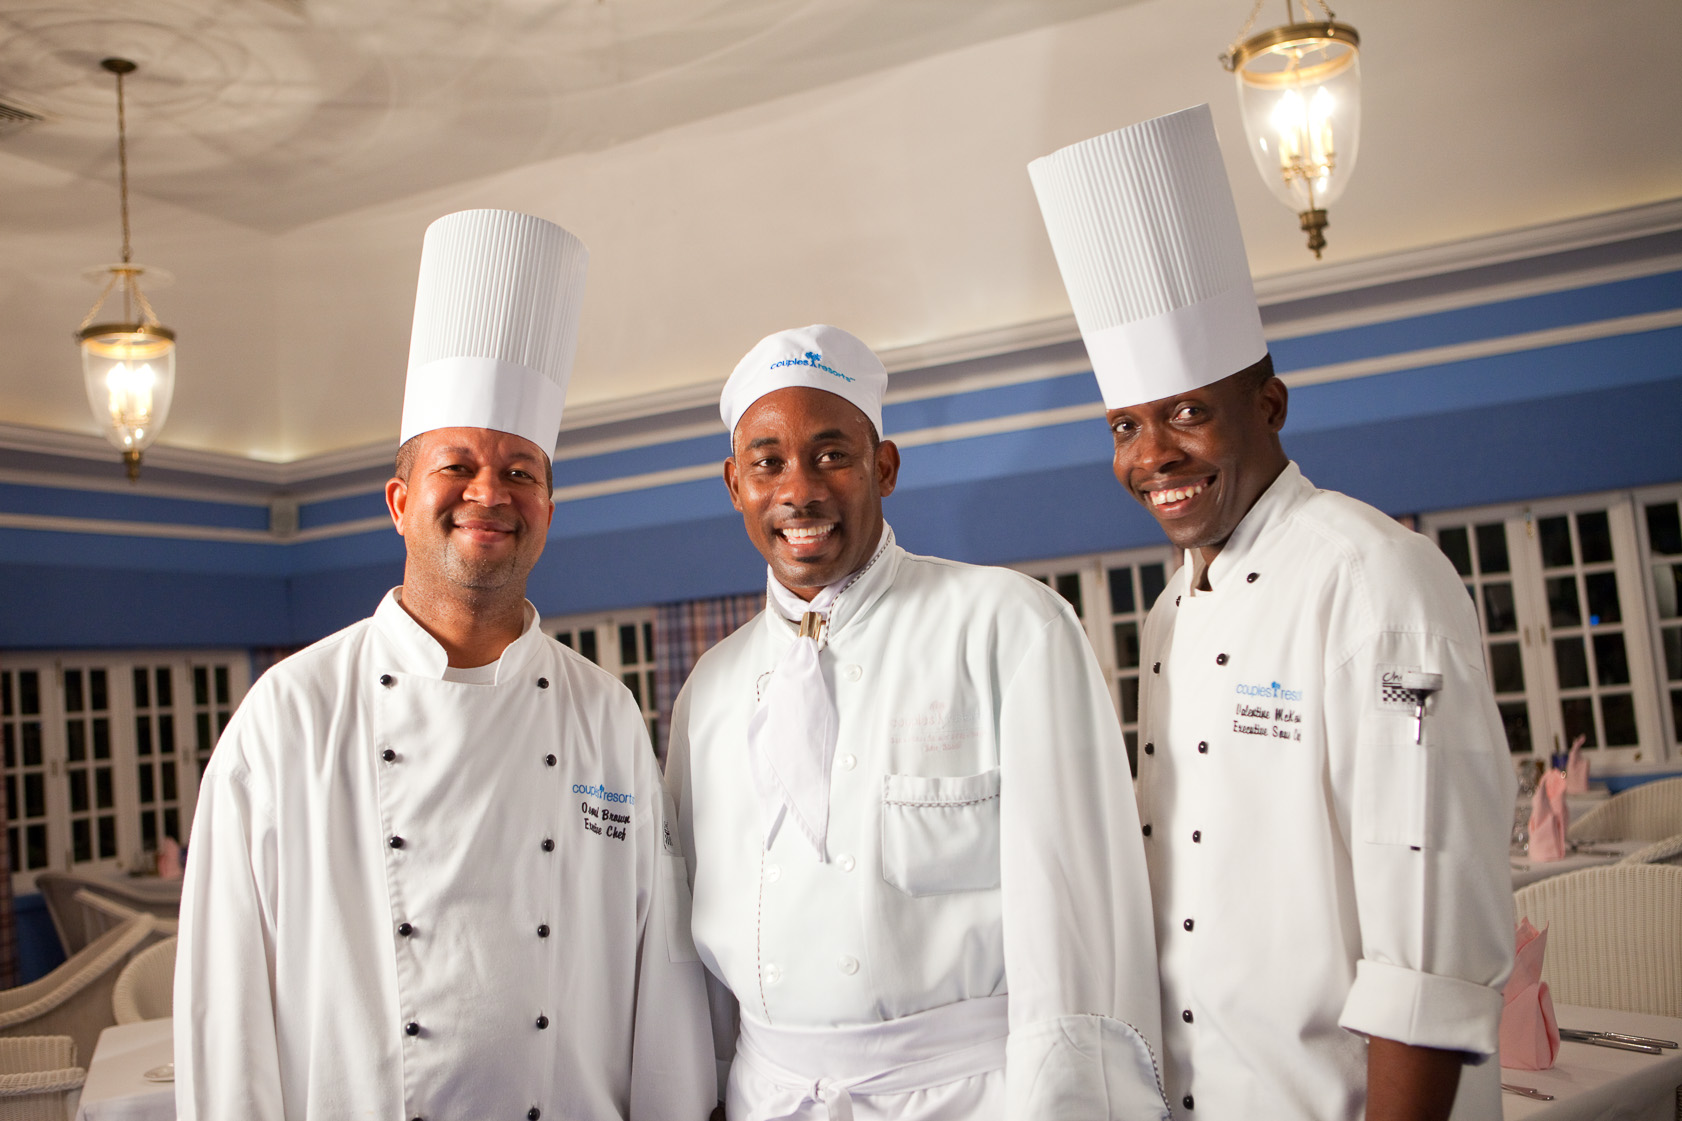 Our skilled and dedicated chefs